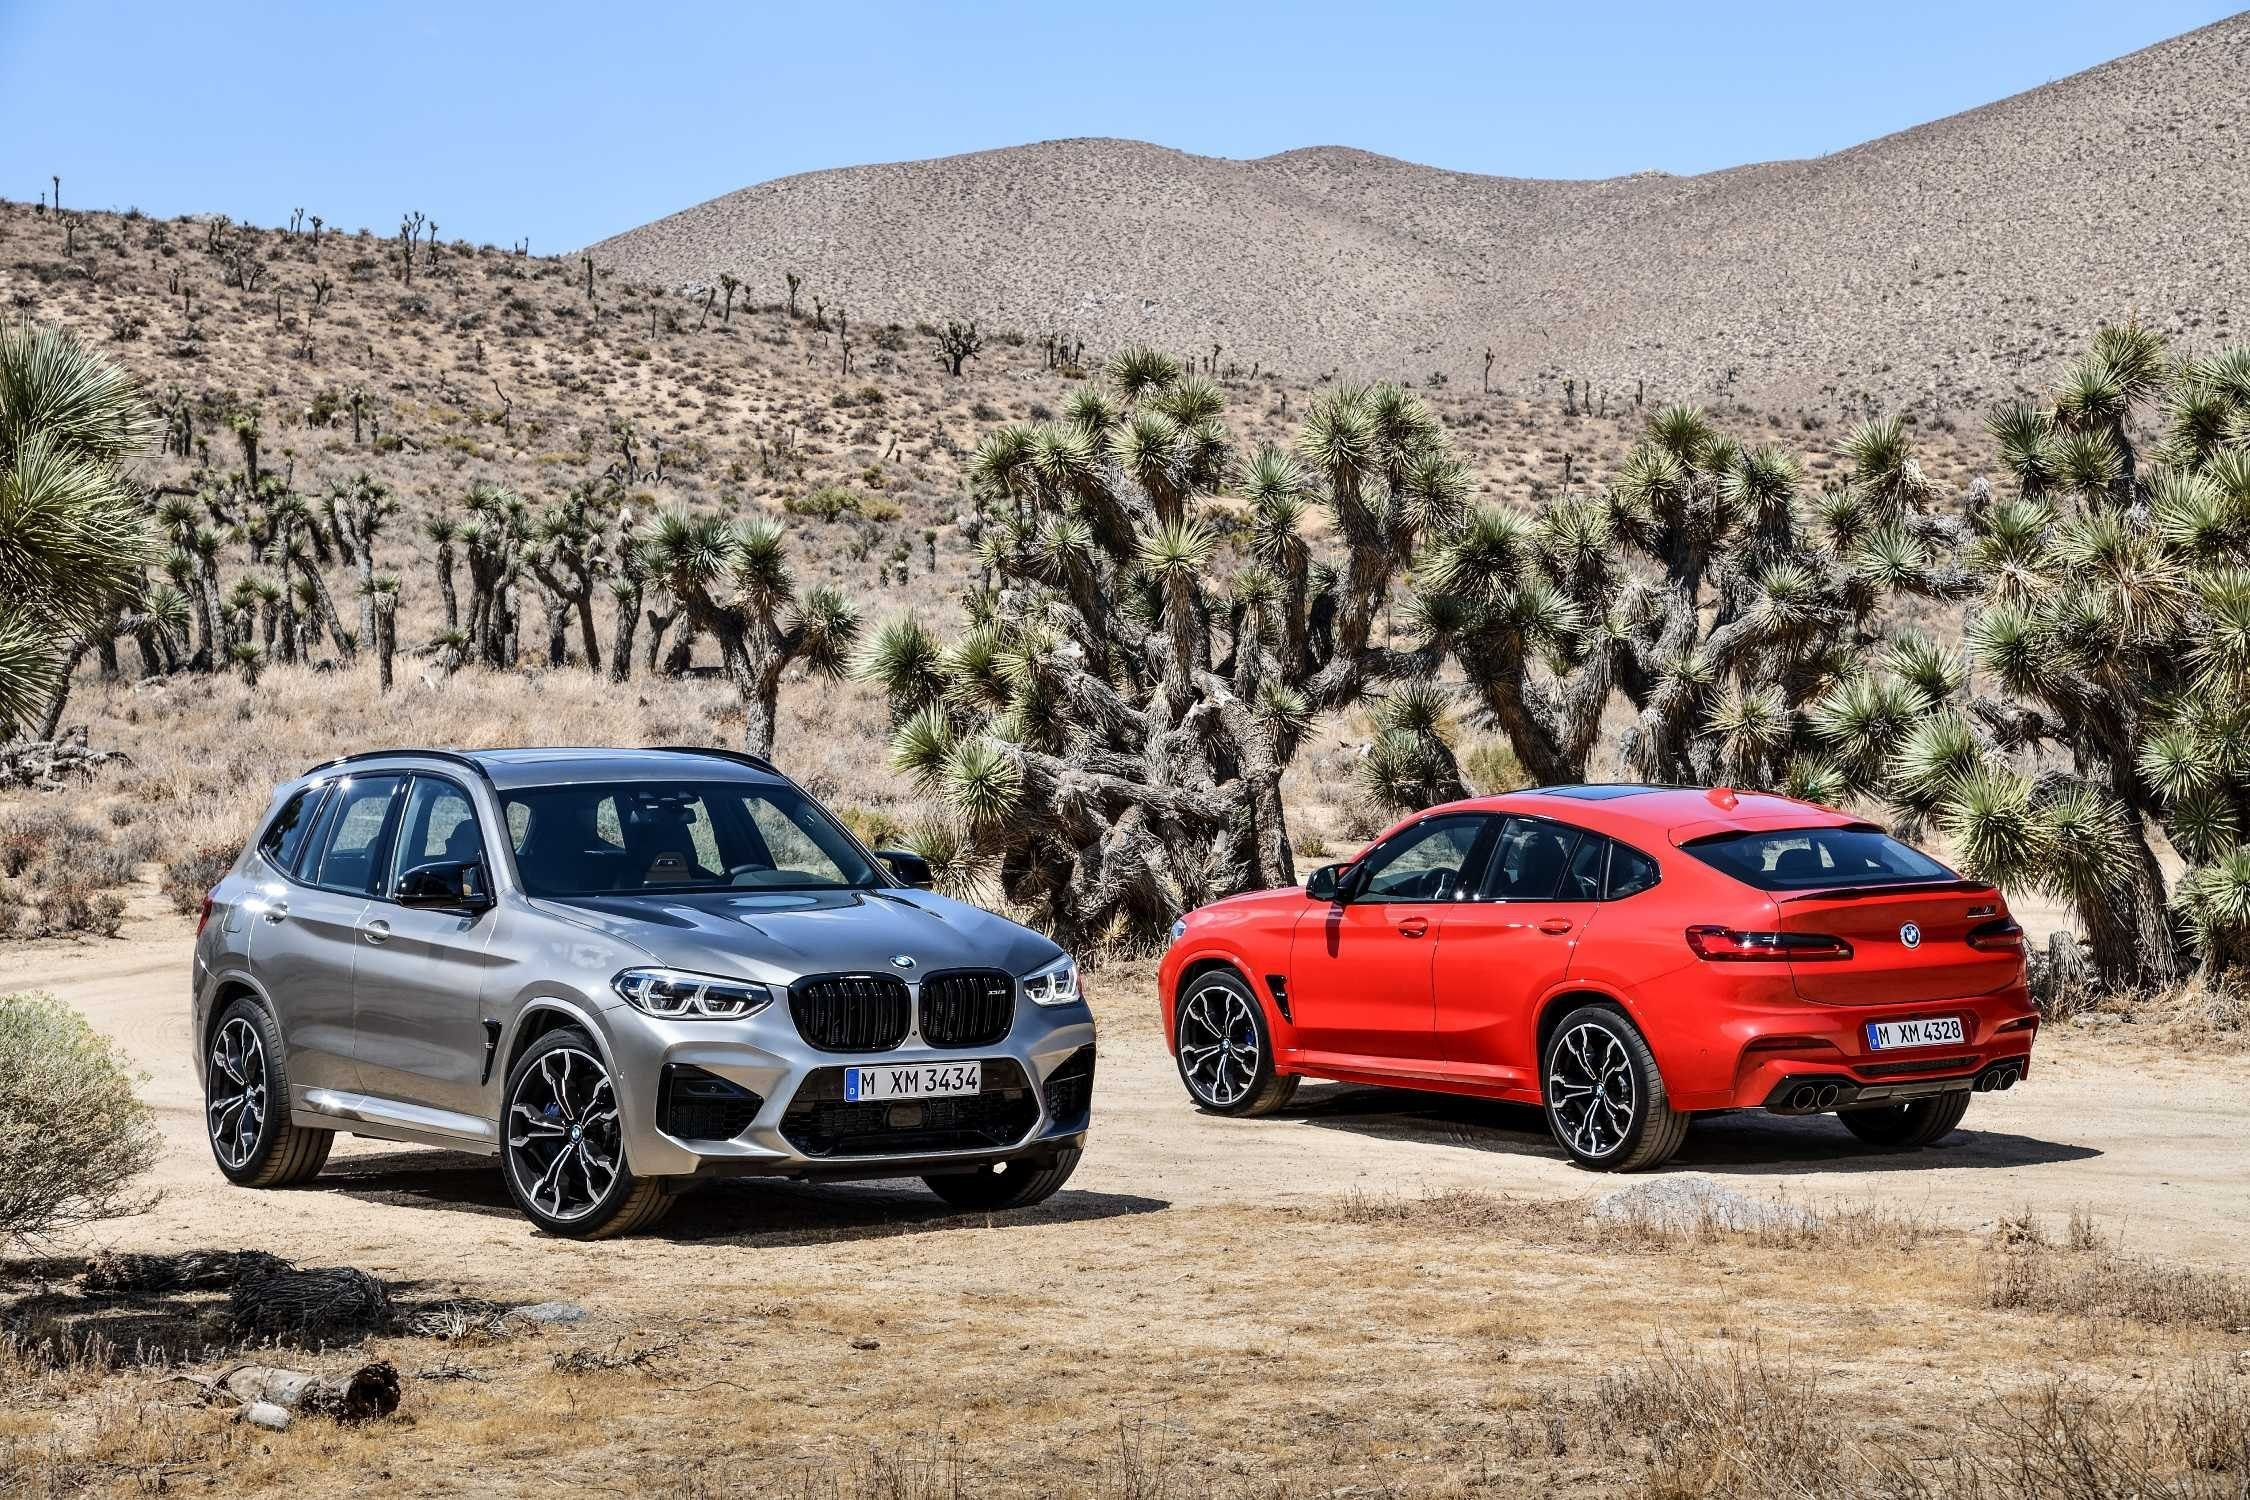 New 2020 Bmw X3 Hybrid Release Date Release Date And Concept Bmw X3 New Bmw Bmw